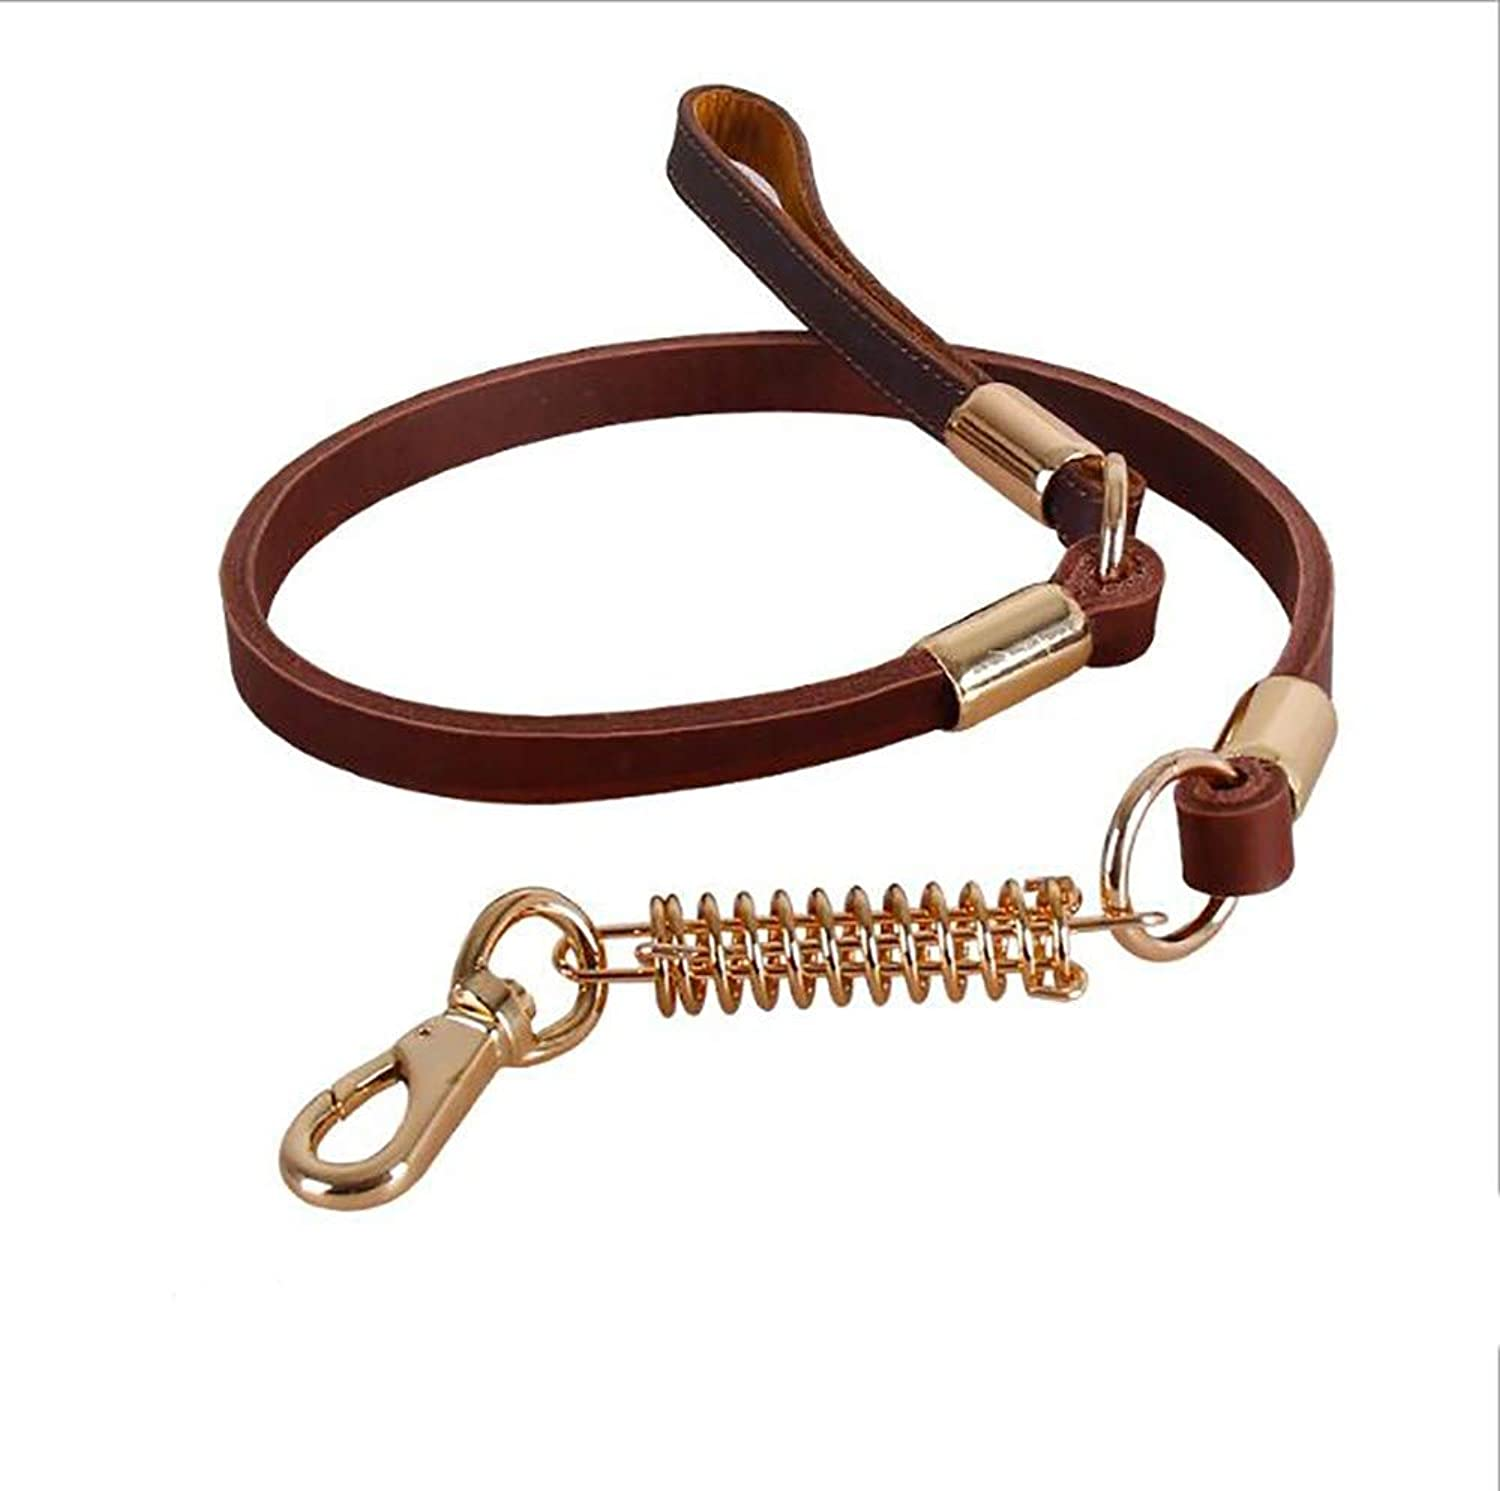 GAOJIN6868 Leather Dog Leash,Soft and Super Strong Belt Leather Dog Training Leash Lead Cushioned Leather Handle Explosionproof Spring Suitable for Large and Medium Dogs Walking 122cm